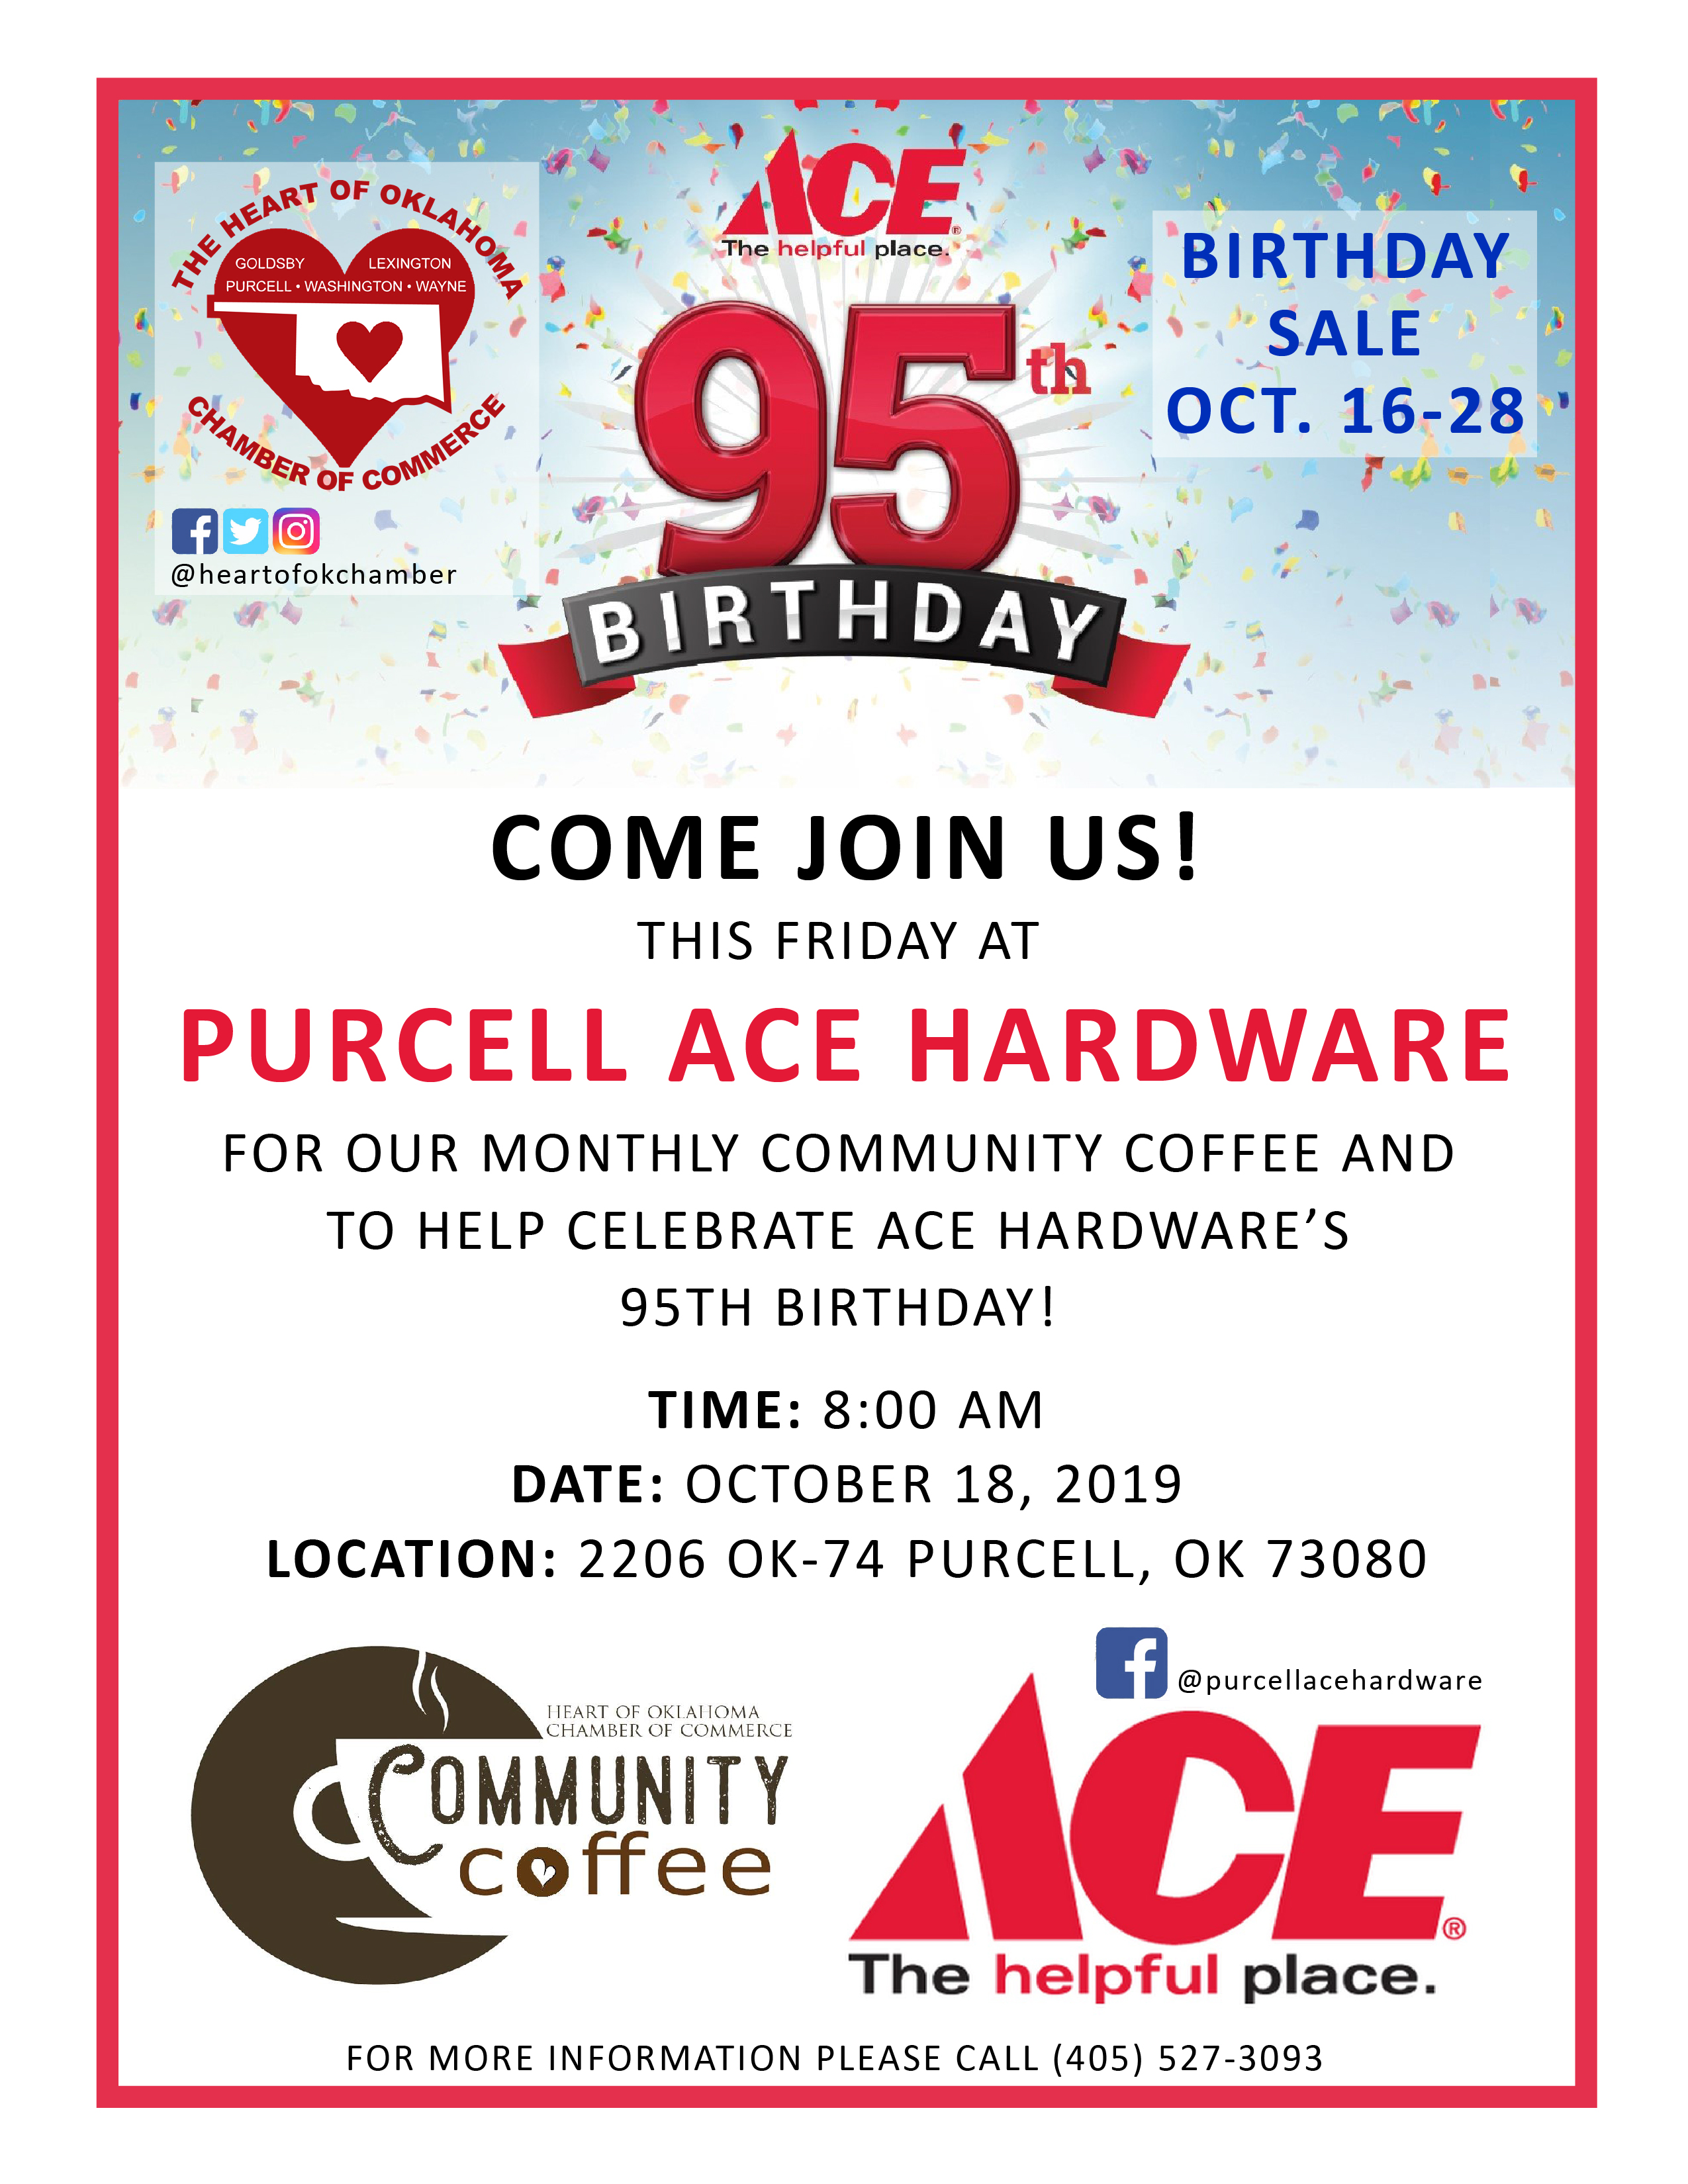 Purcell-Ace-01.jpg